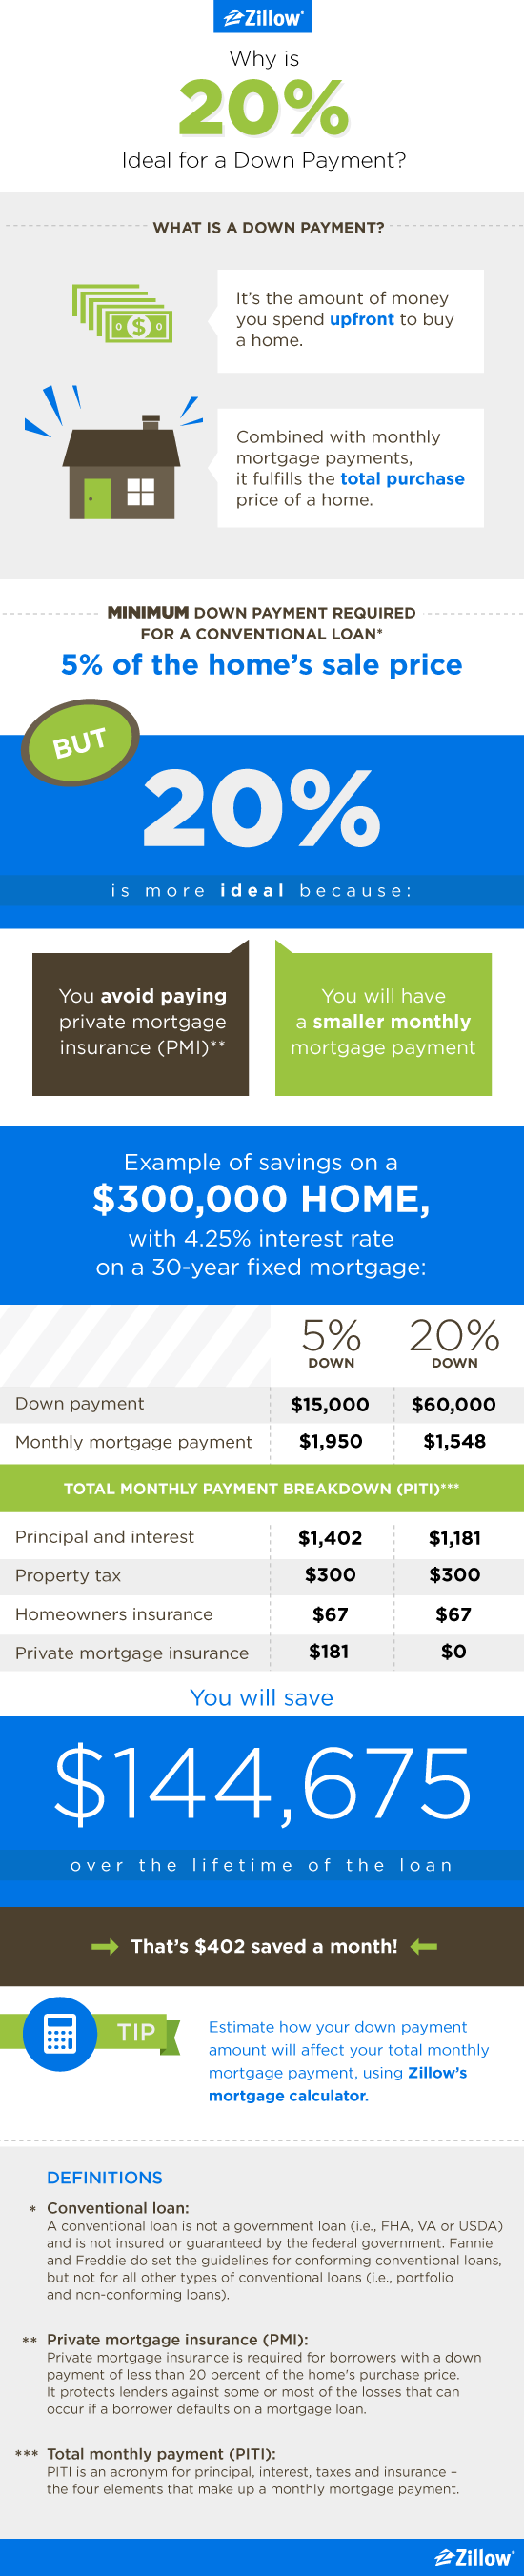 The benefits of a 20 percent down payment/real estate qualifying mortgage loans investment real estate